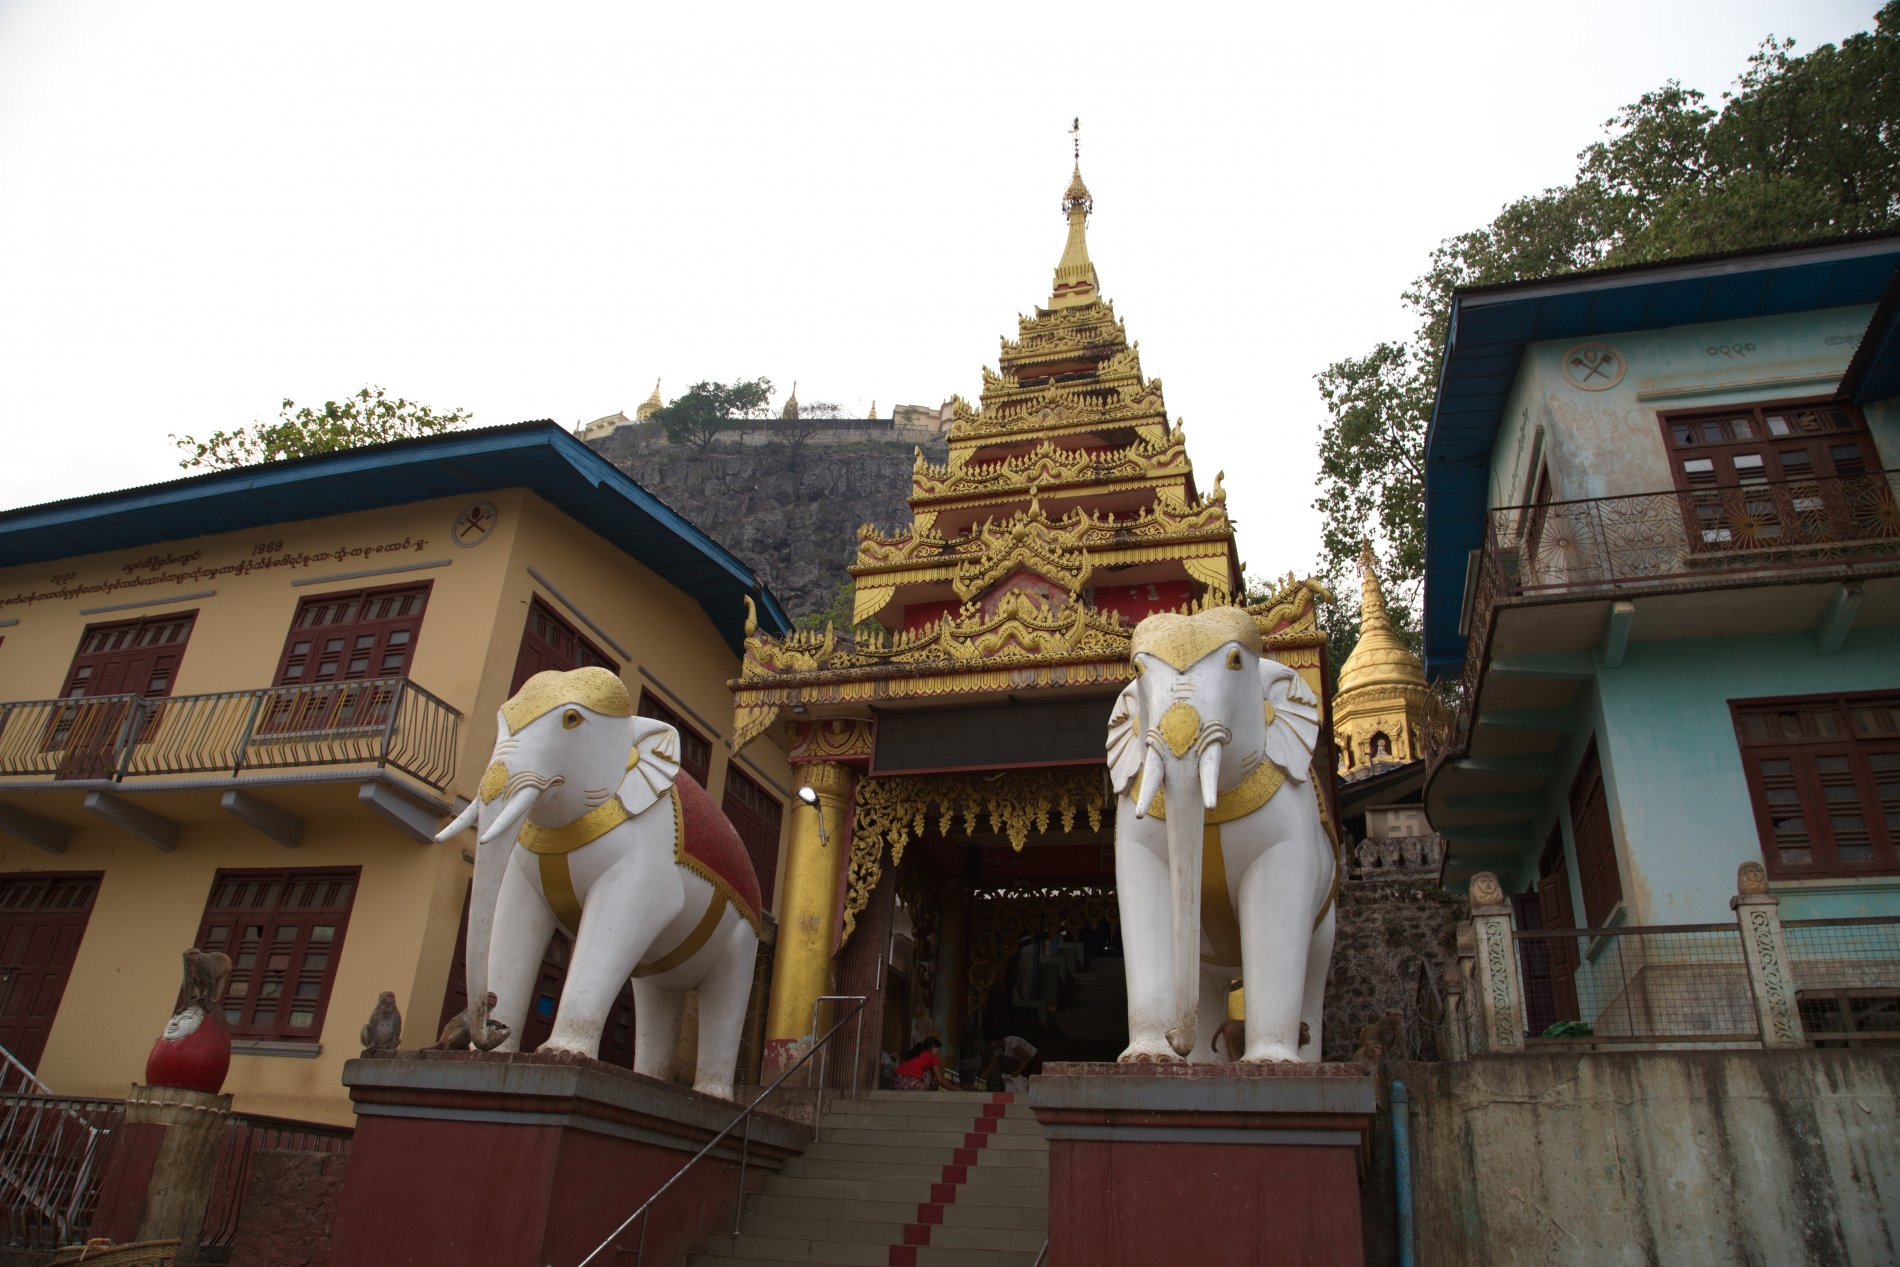 Mount_Popa_01.jpg-commment